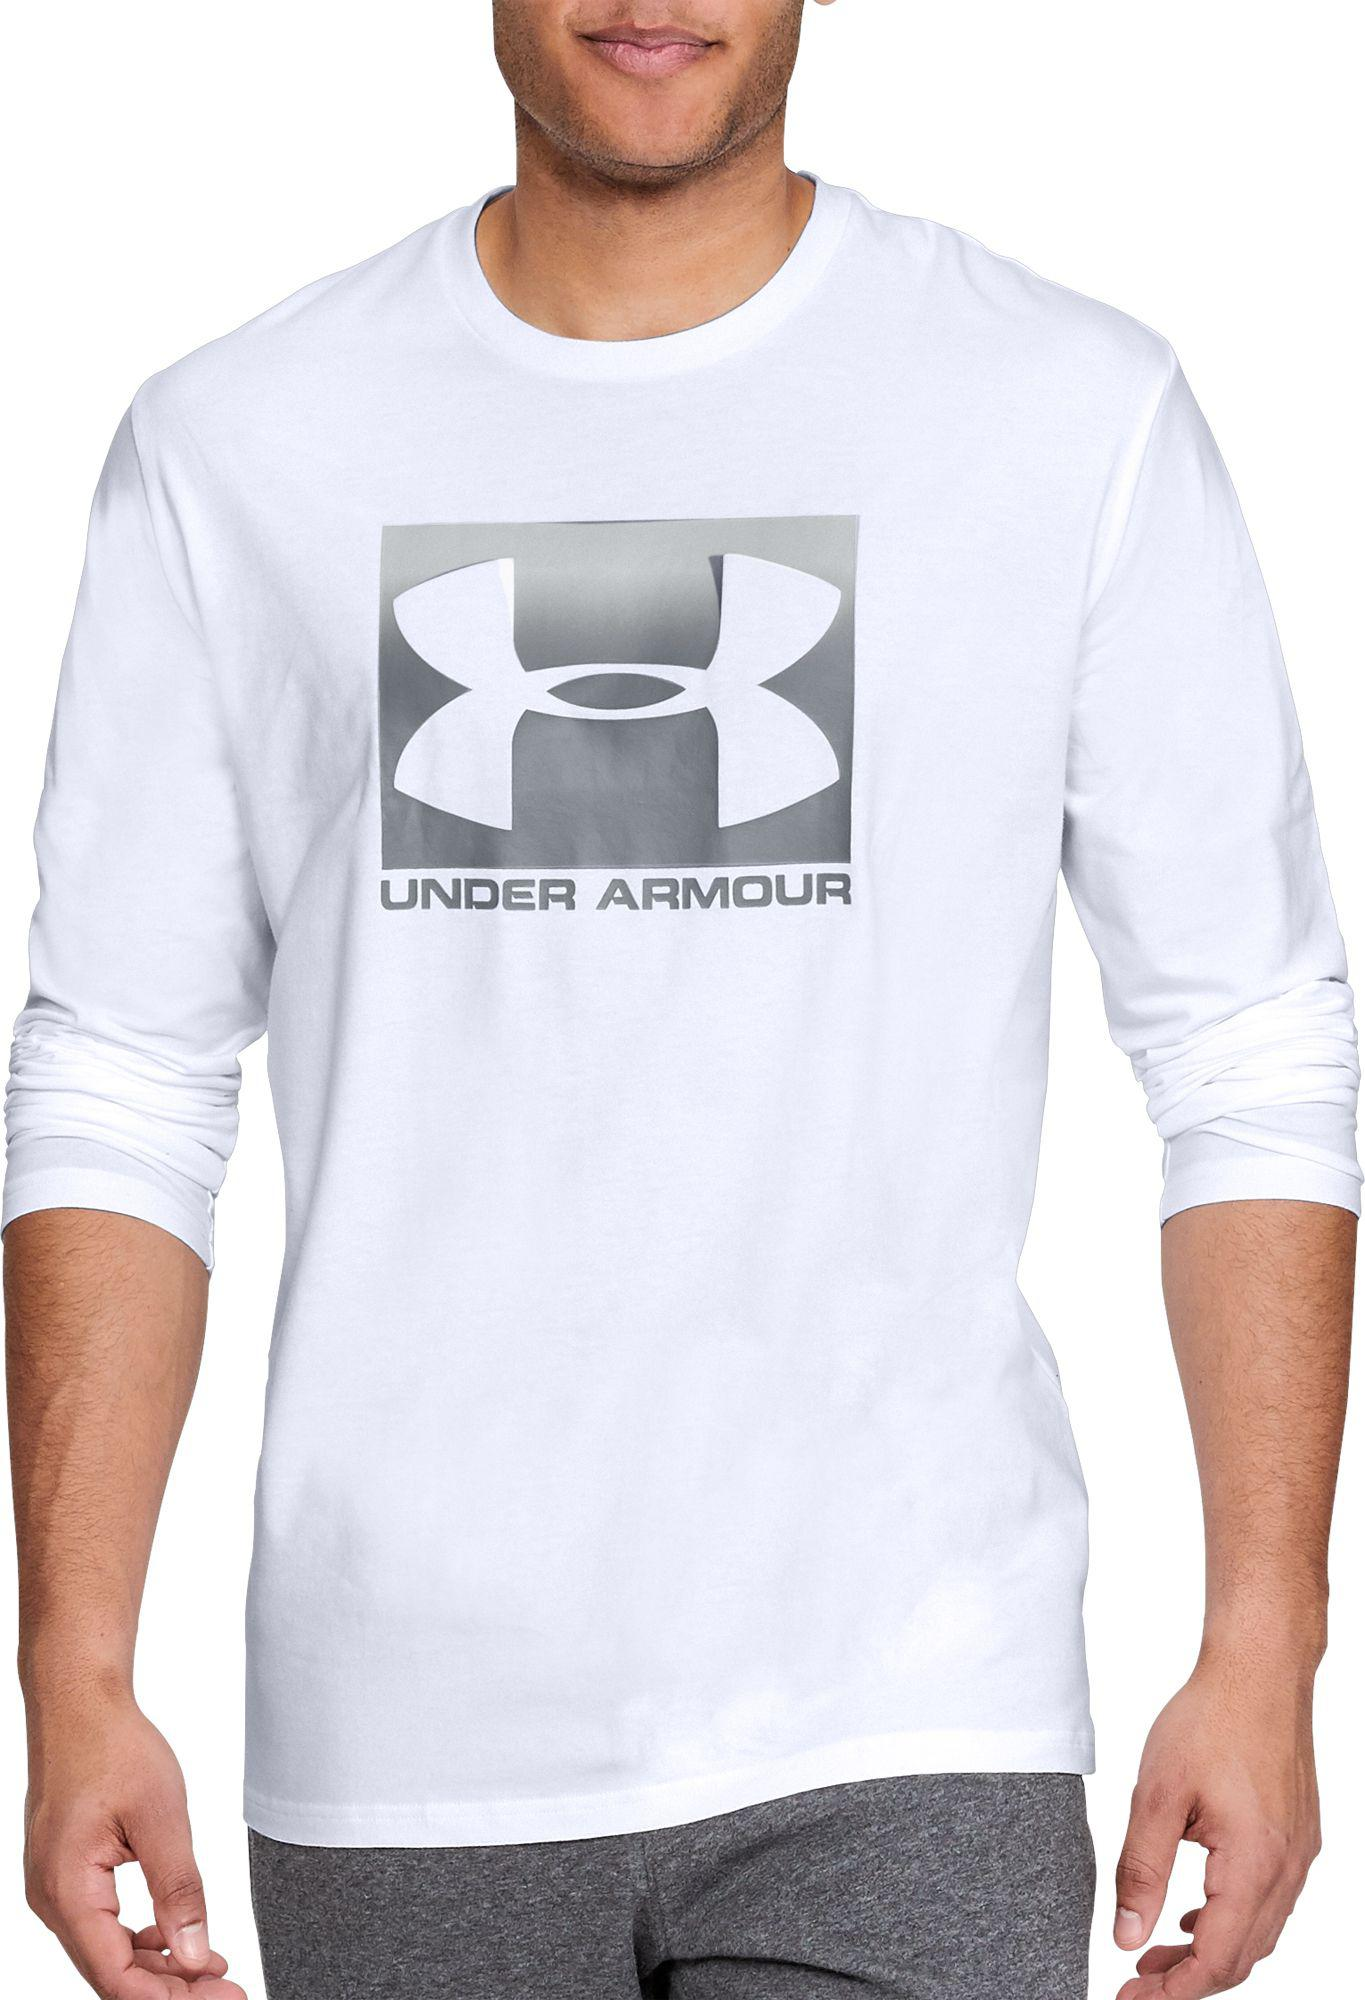 76758e1f Under Armour - White Oxed Sportstyle Long Sleeve Shirt for Men - Lyst. View  fullscreen